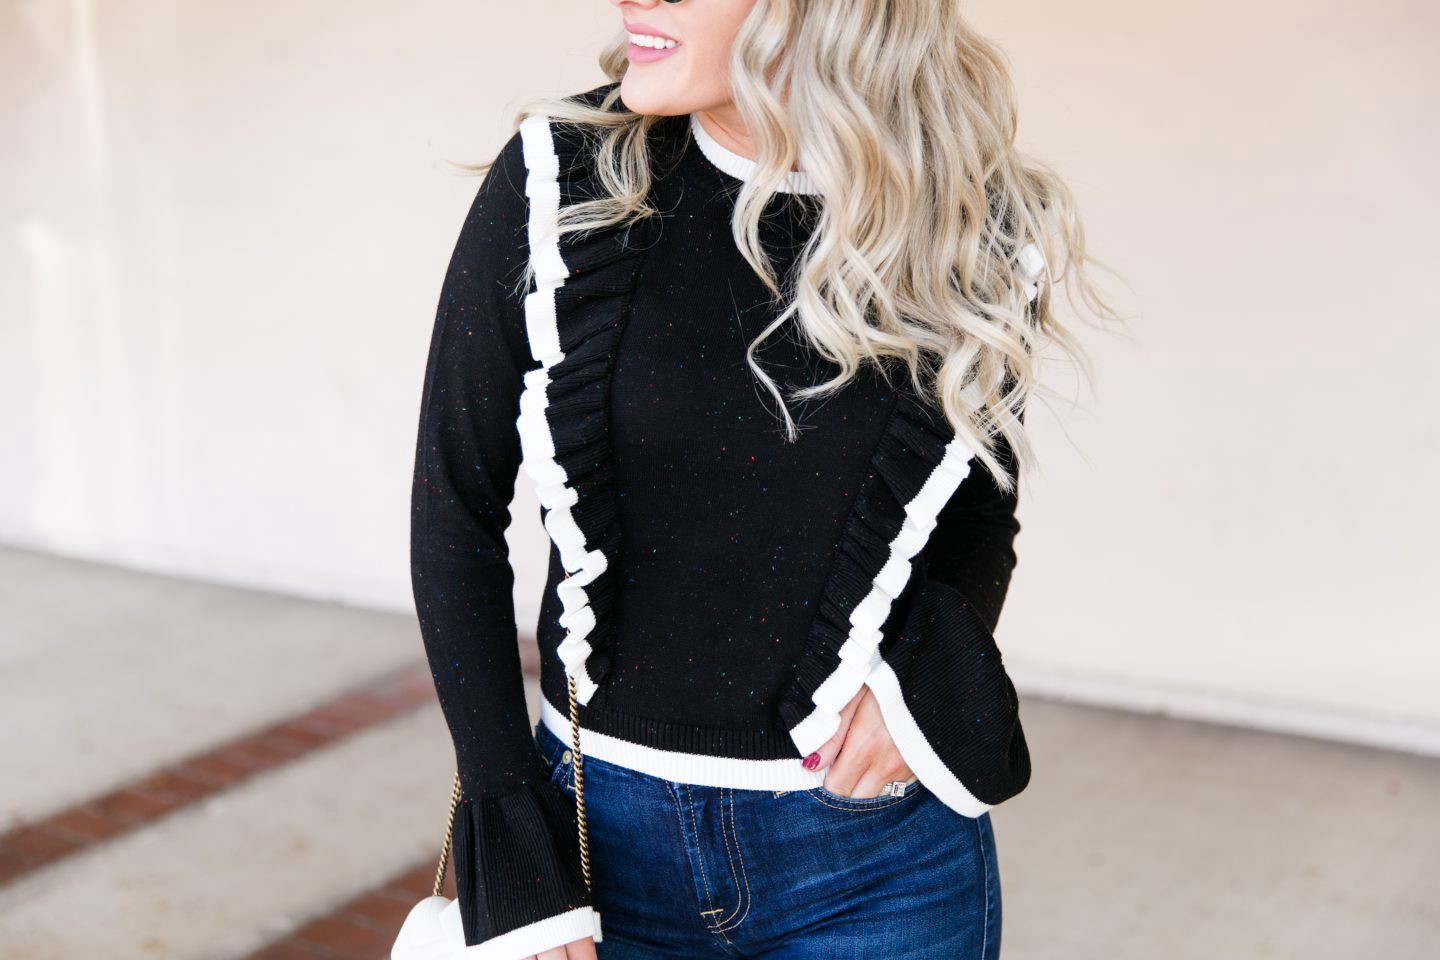 Steve Madden Over The Knee Boots styled for Fall by top Orange County fashion blog, Dress Me Blonde